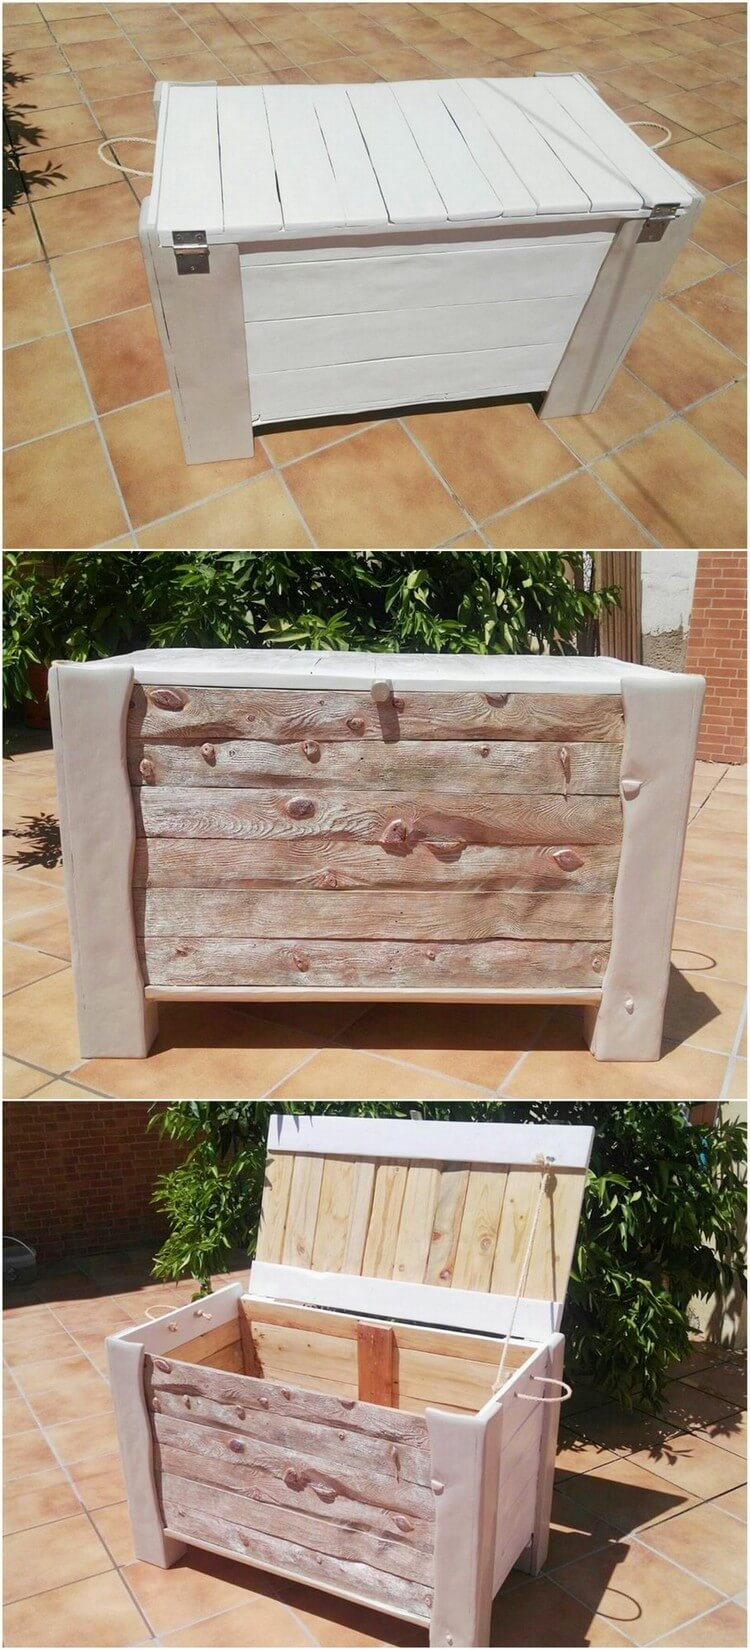 Creative repurposing ideas with used wood pallets pallet for Pallet wood storage box